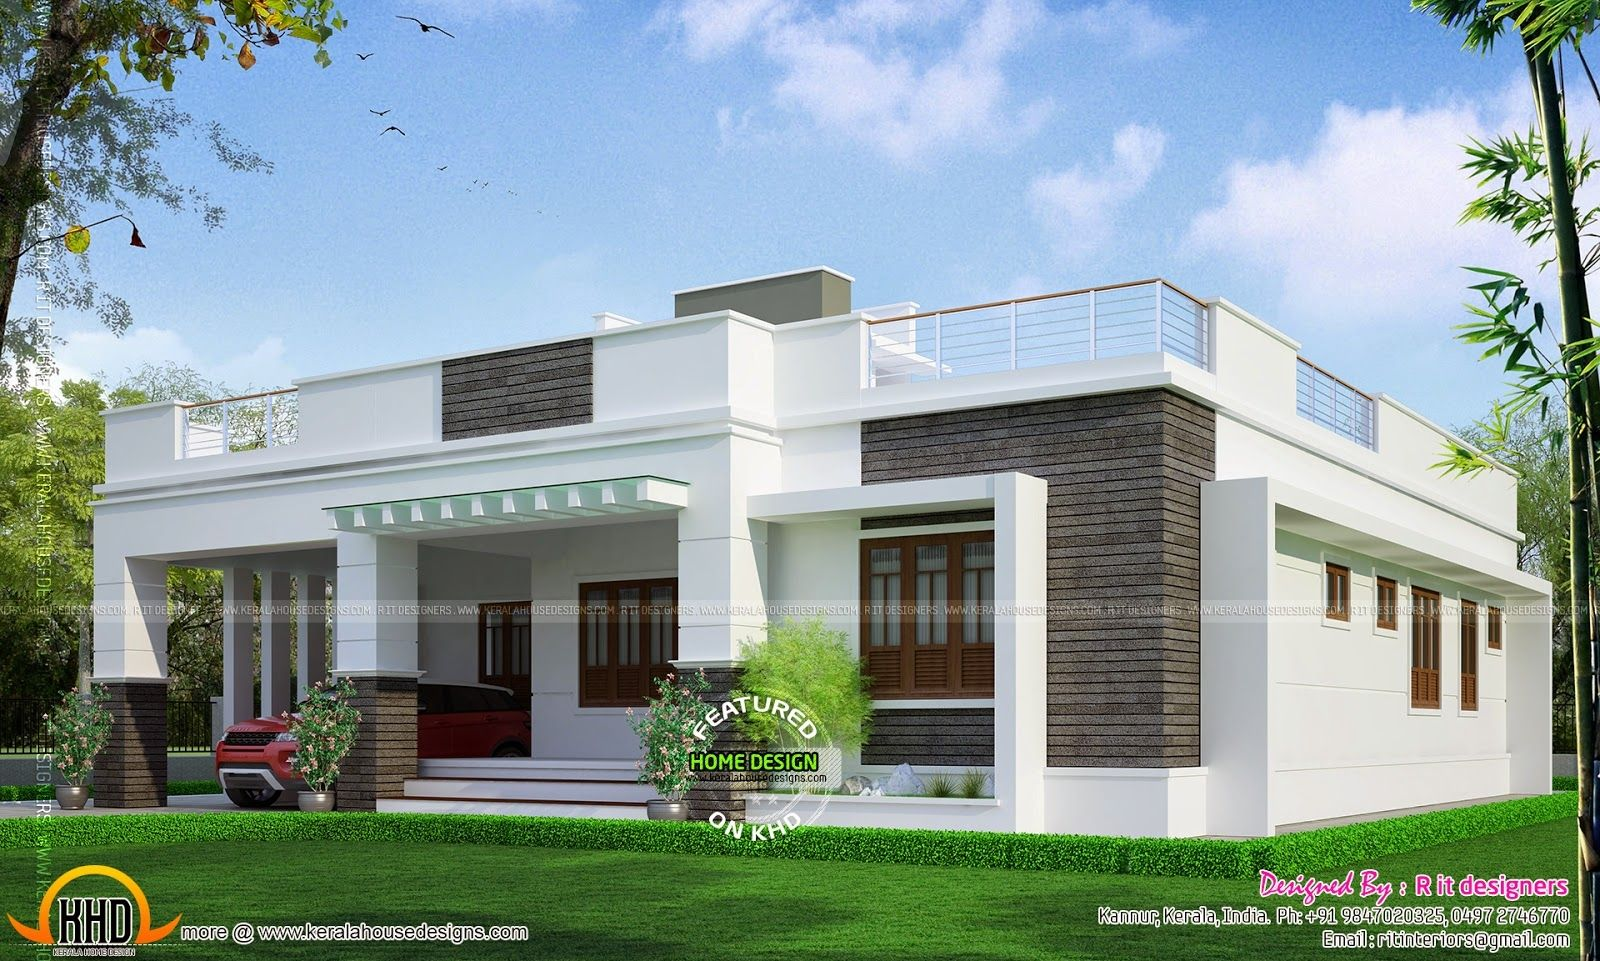 House designs floor plans kerala patterns of  real estate property could be transformed into interactive or also pin by althaf sharafudeen on design rh pinterest